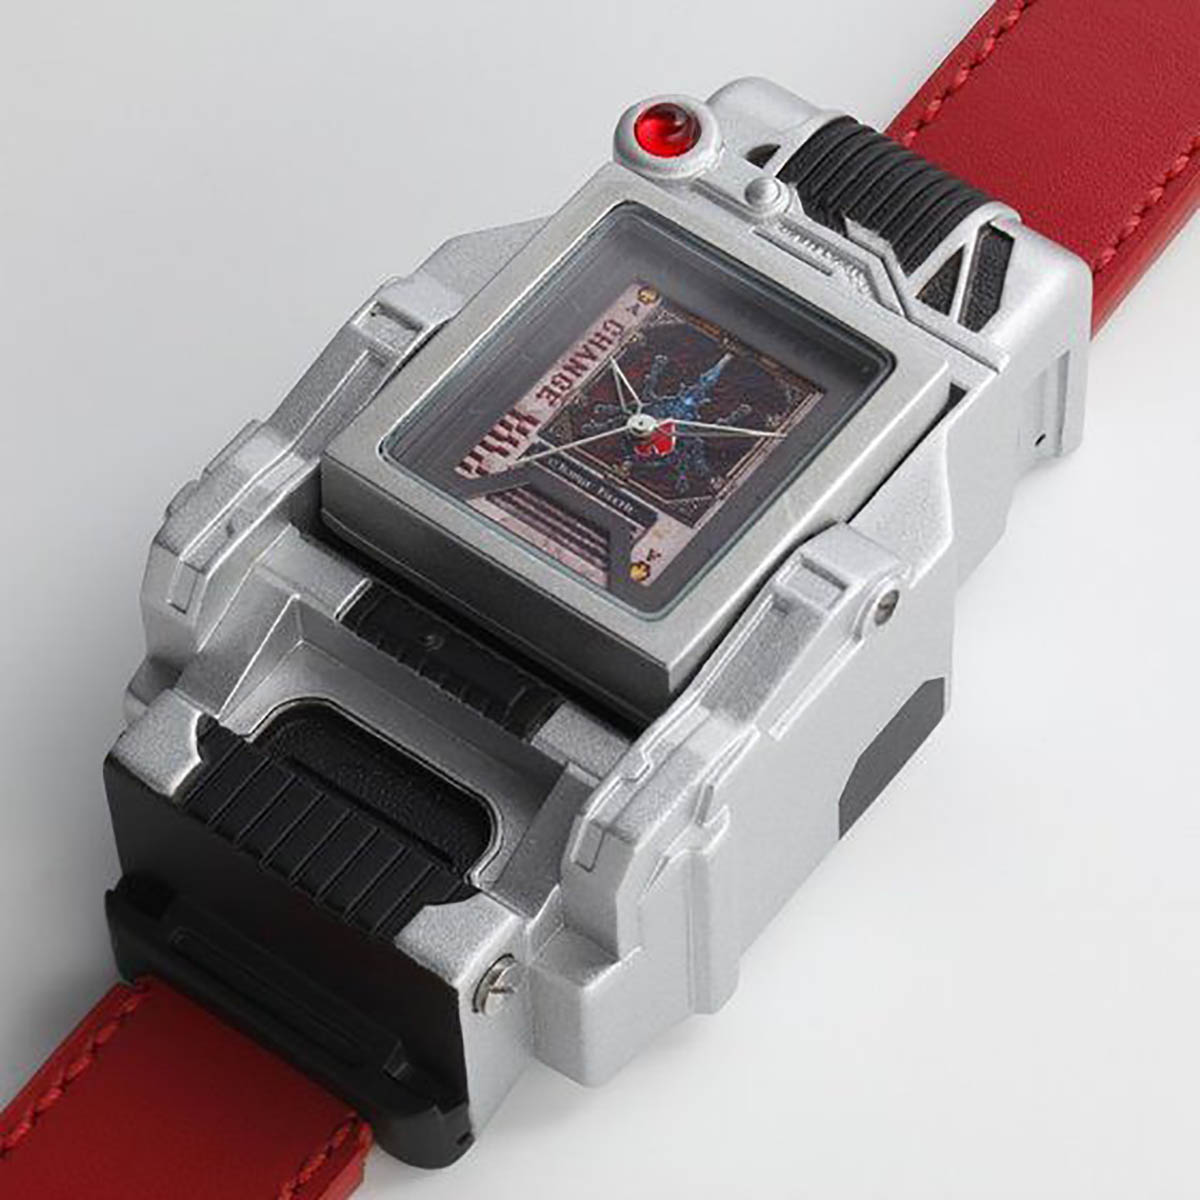 Live Action Watch『仮面ライダーブレイド 変身!腕時計』仮面ライダー剣 グッズ-005